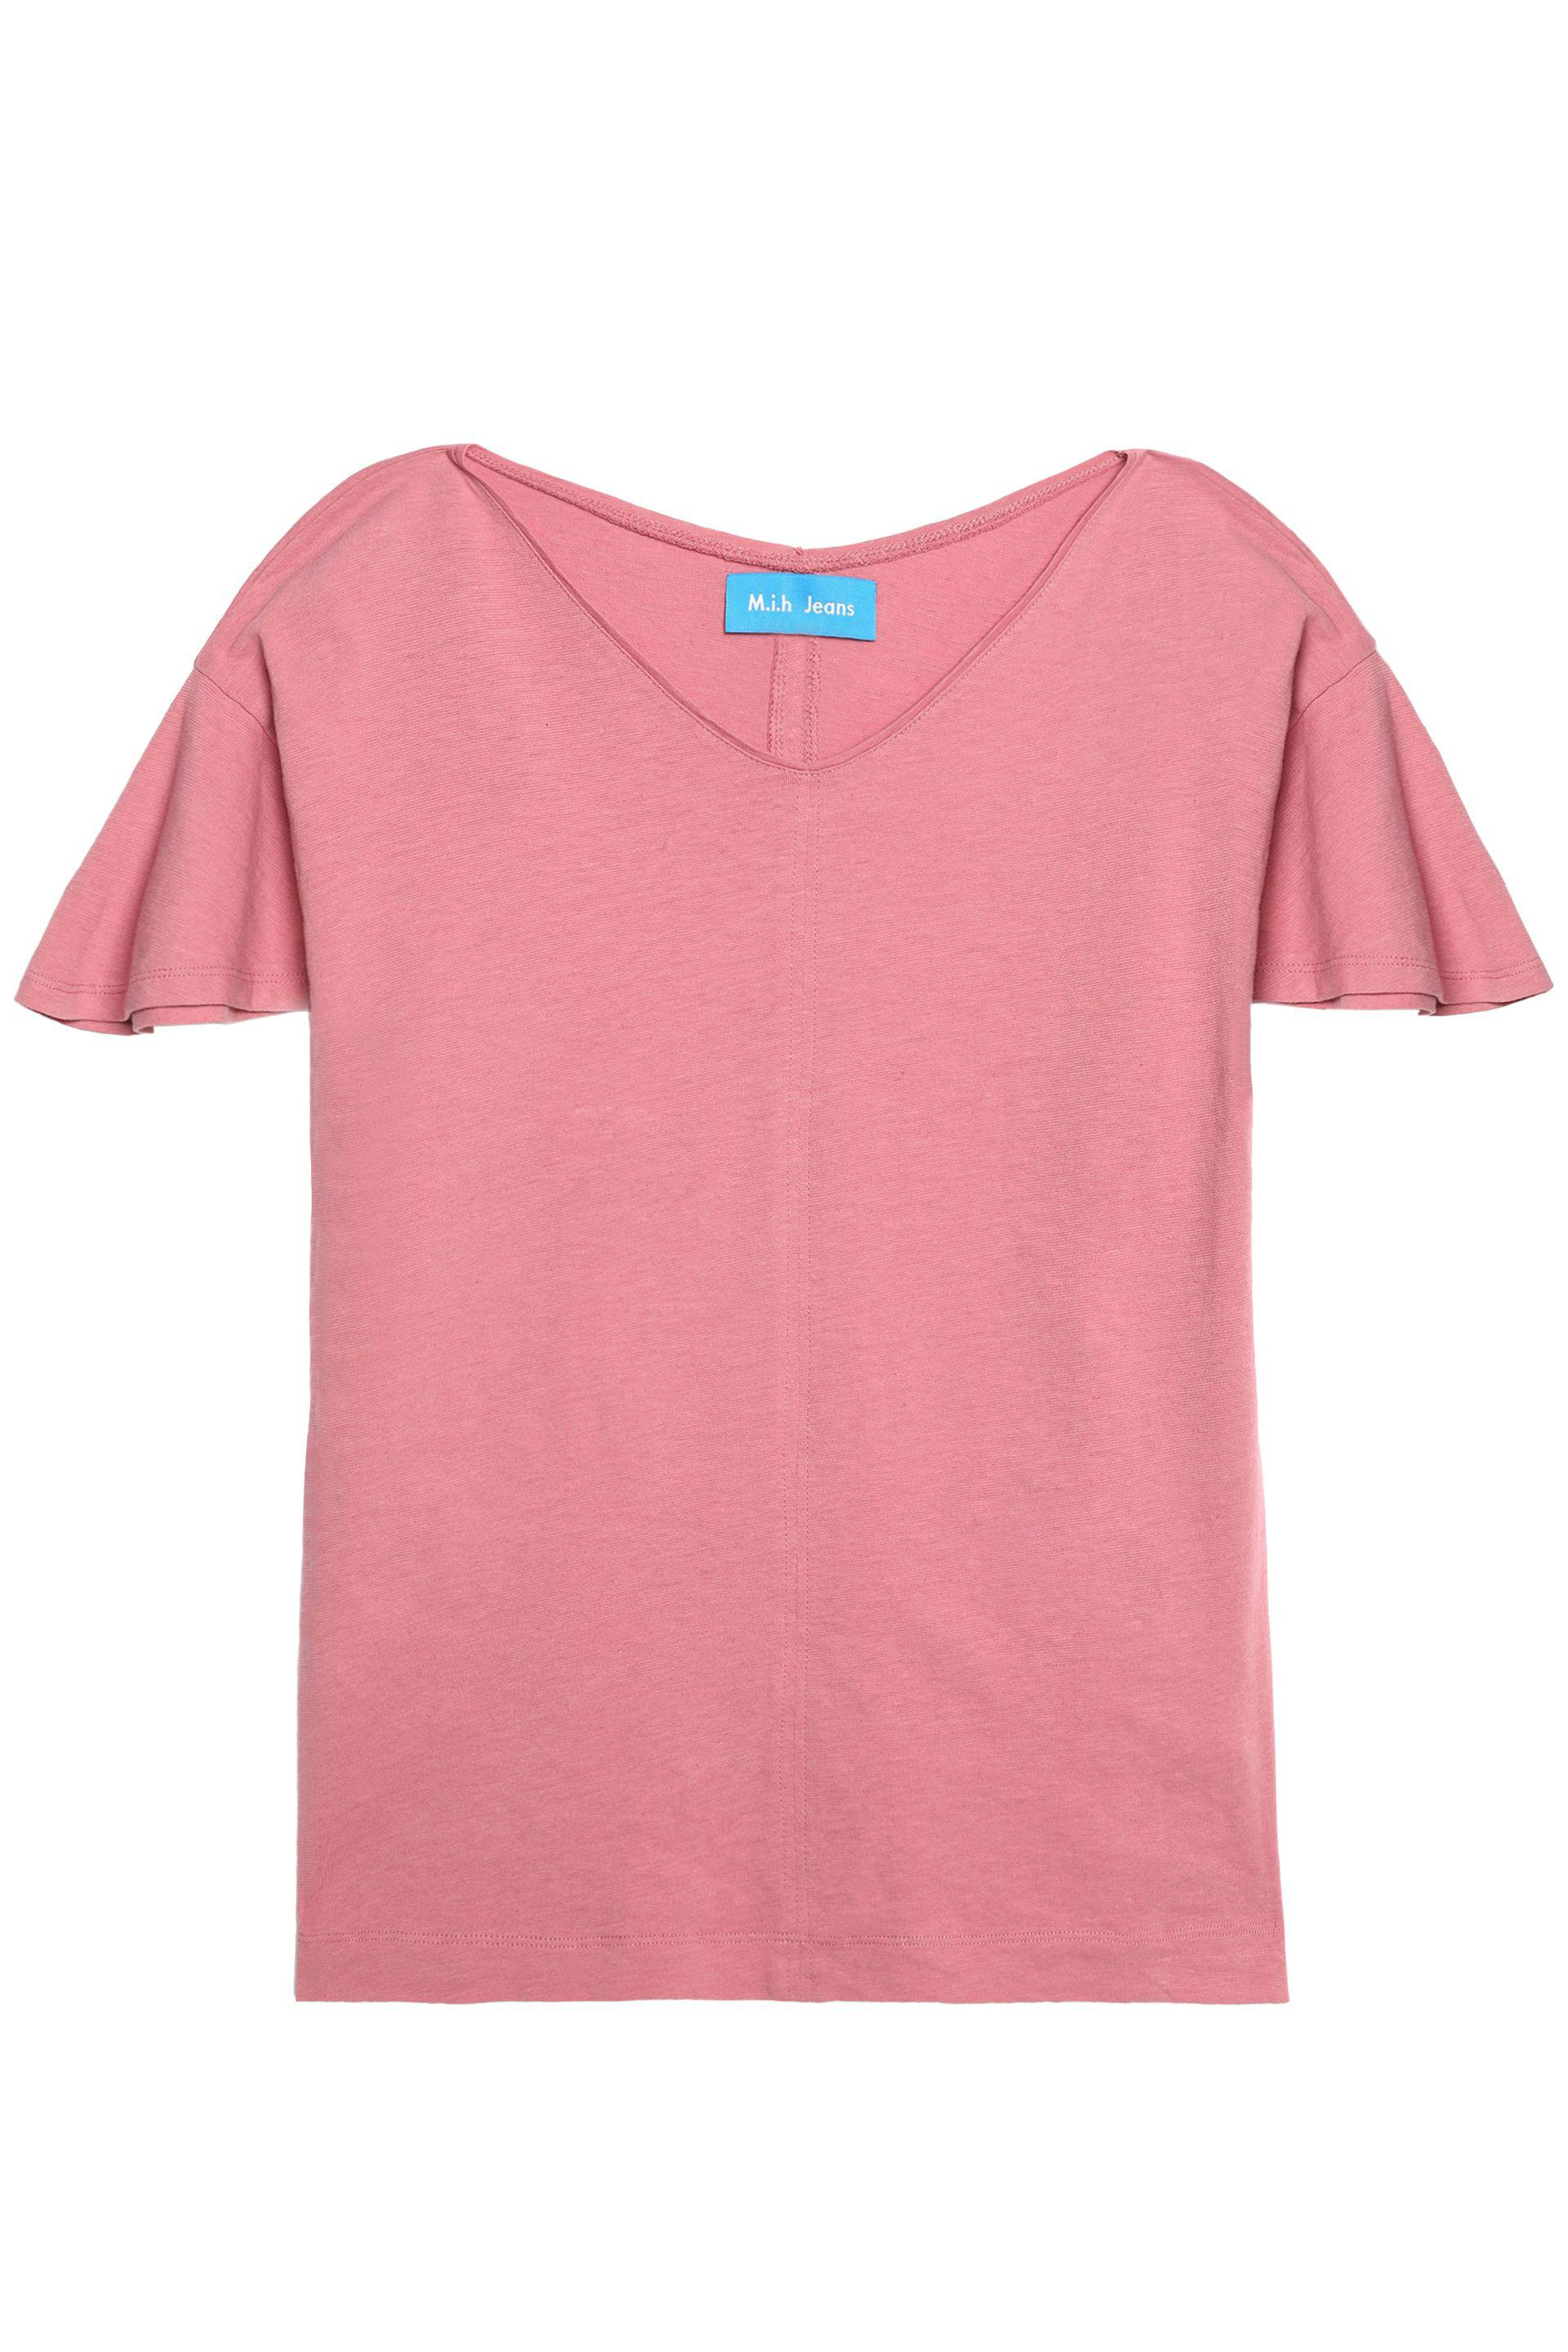 M.i.h Jeans Woman Veevee Cotton And Linen-blend Jersey T-shirt Pink Size L Mih Jeans